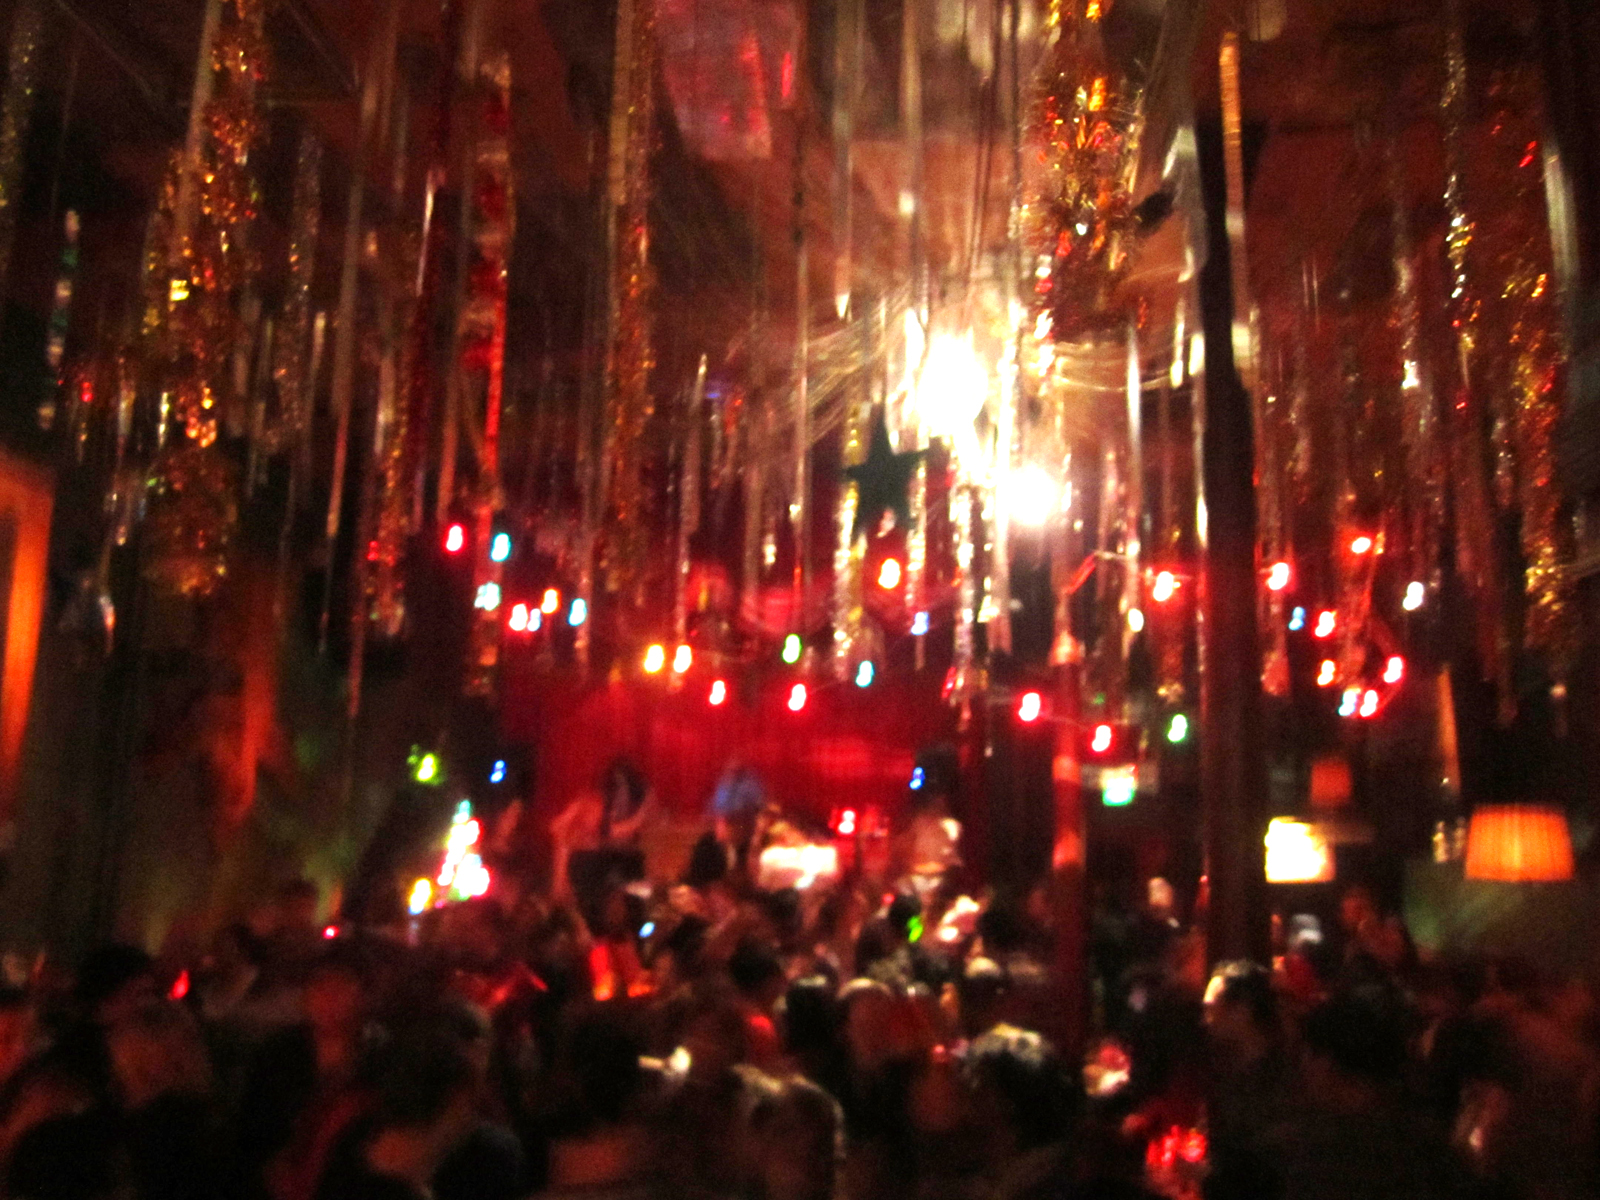 The Make Out Room last year on New Year's Eve.